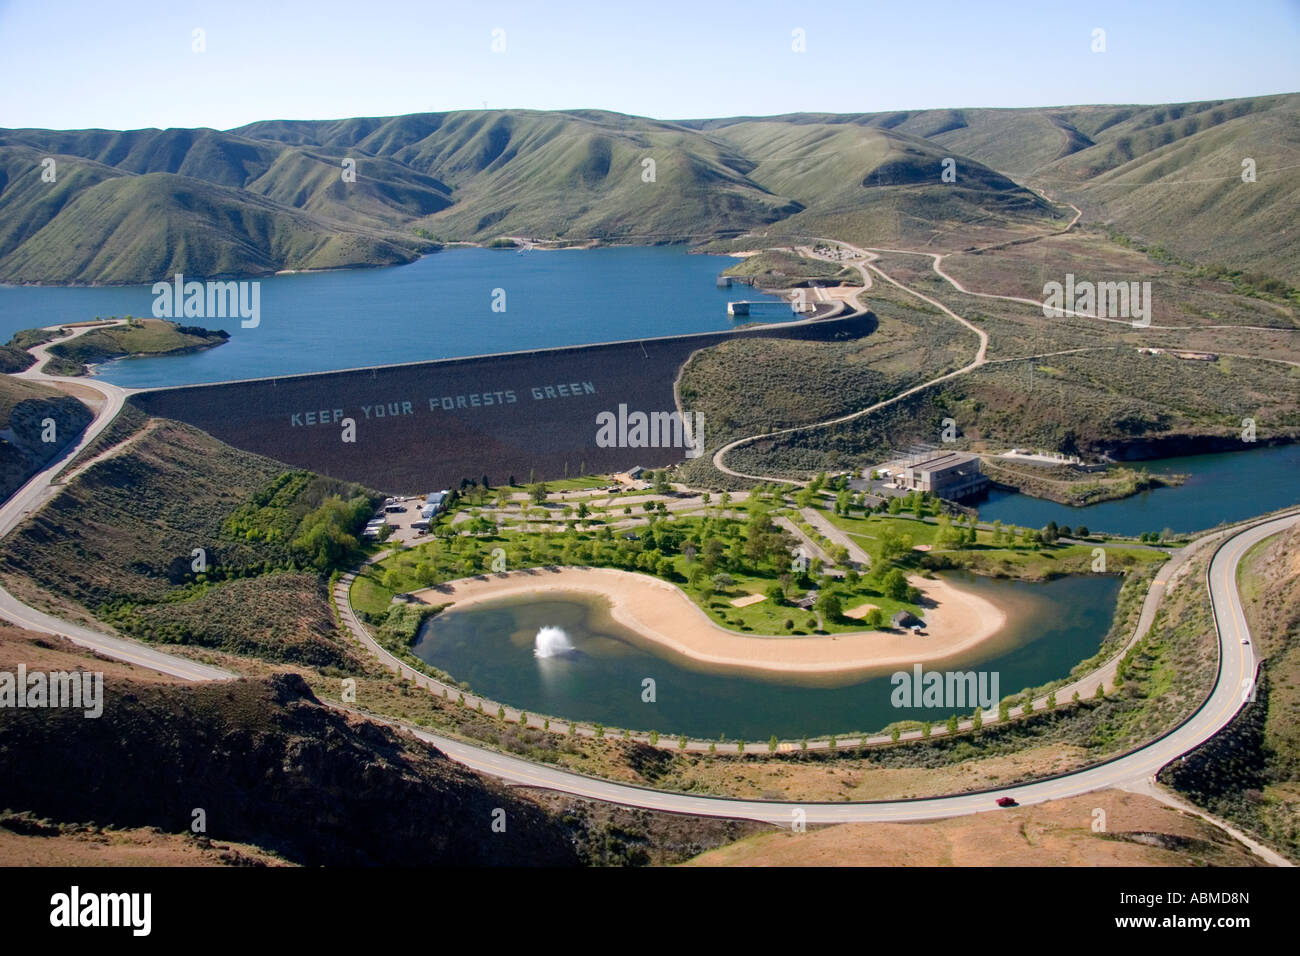 Image result for lucky peak reservoir